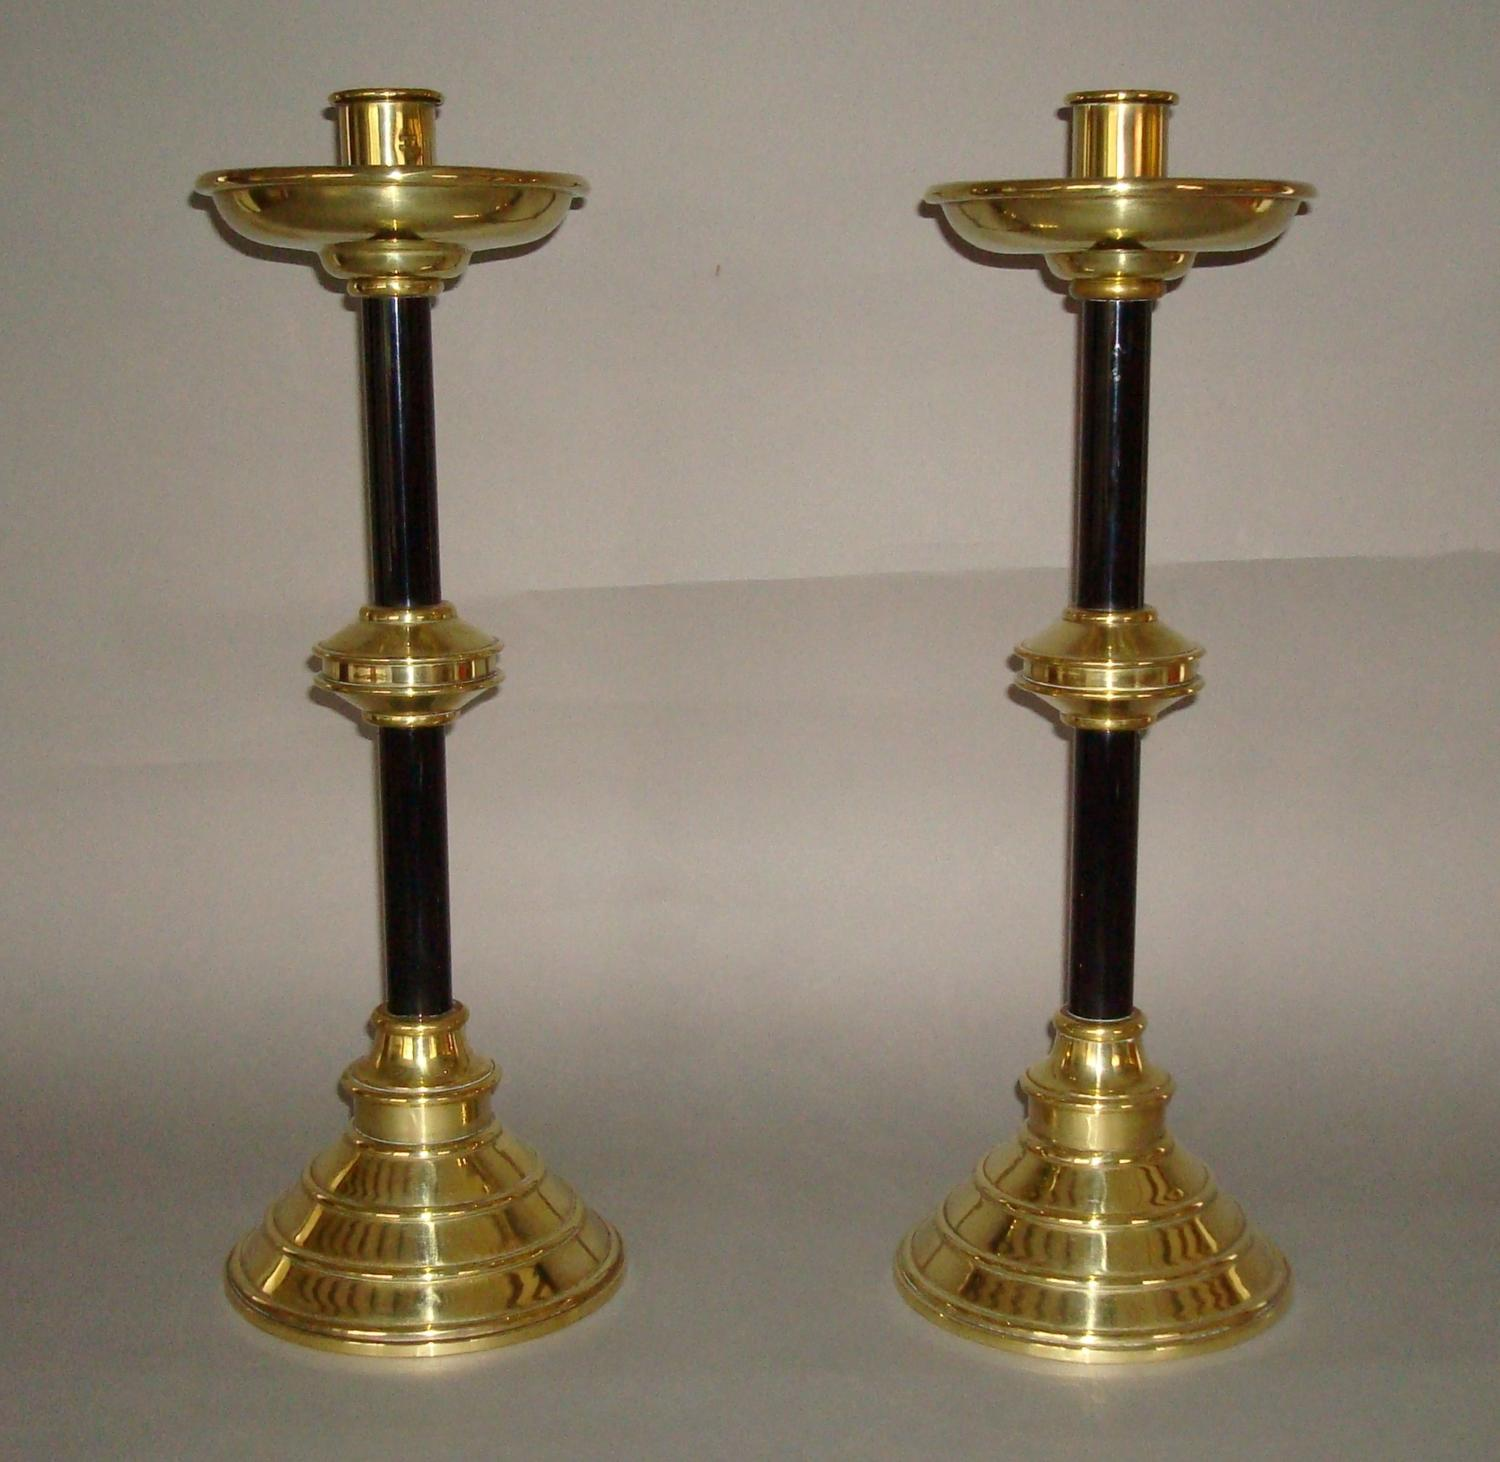 C19th pair of candlesticks